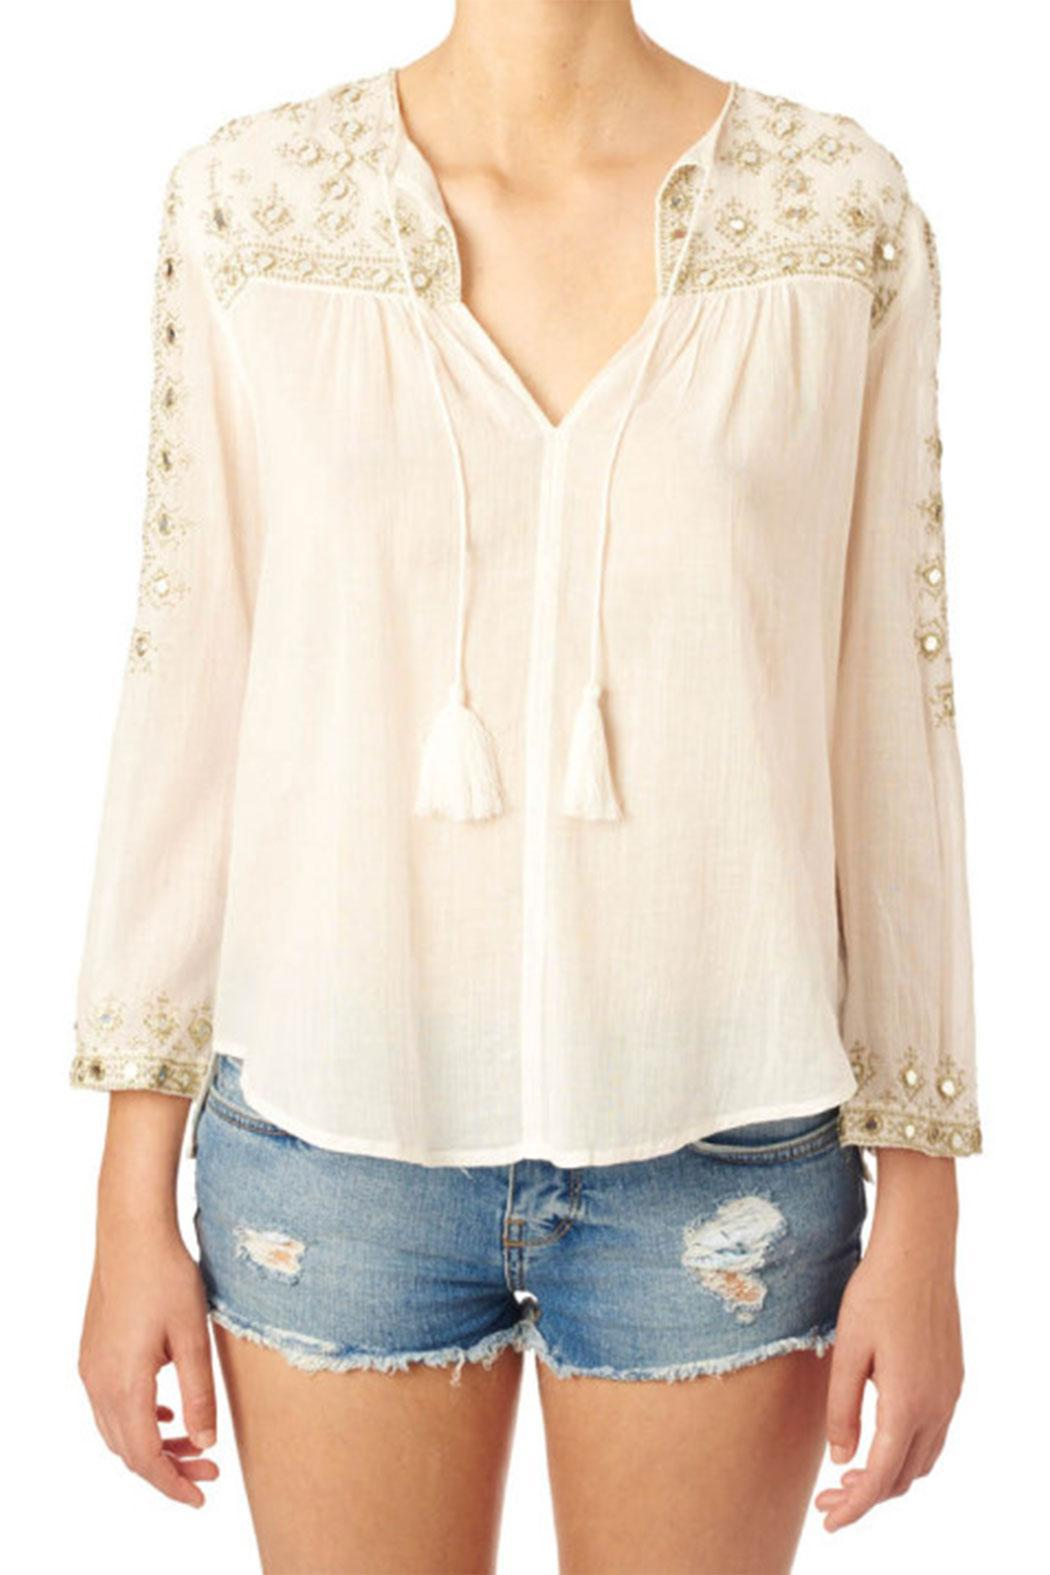 Star Mela Mirror Embroided Top - Front Cropped Image